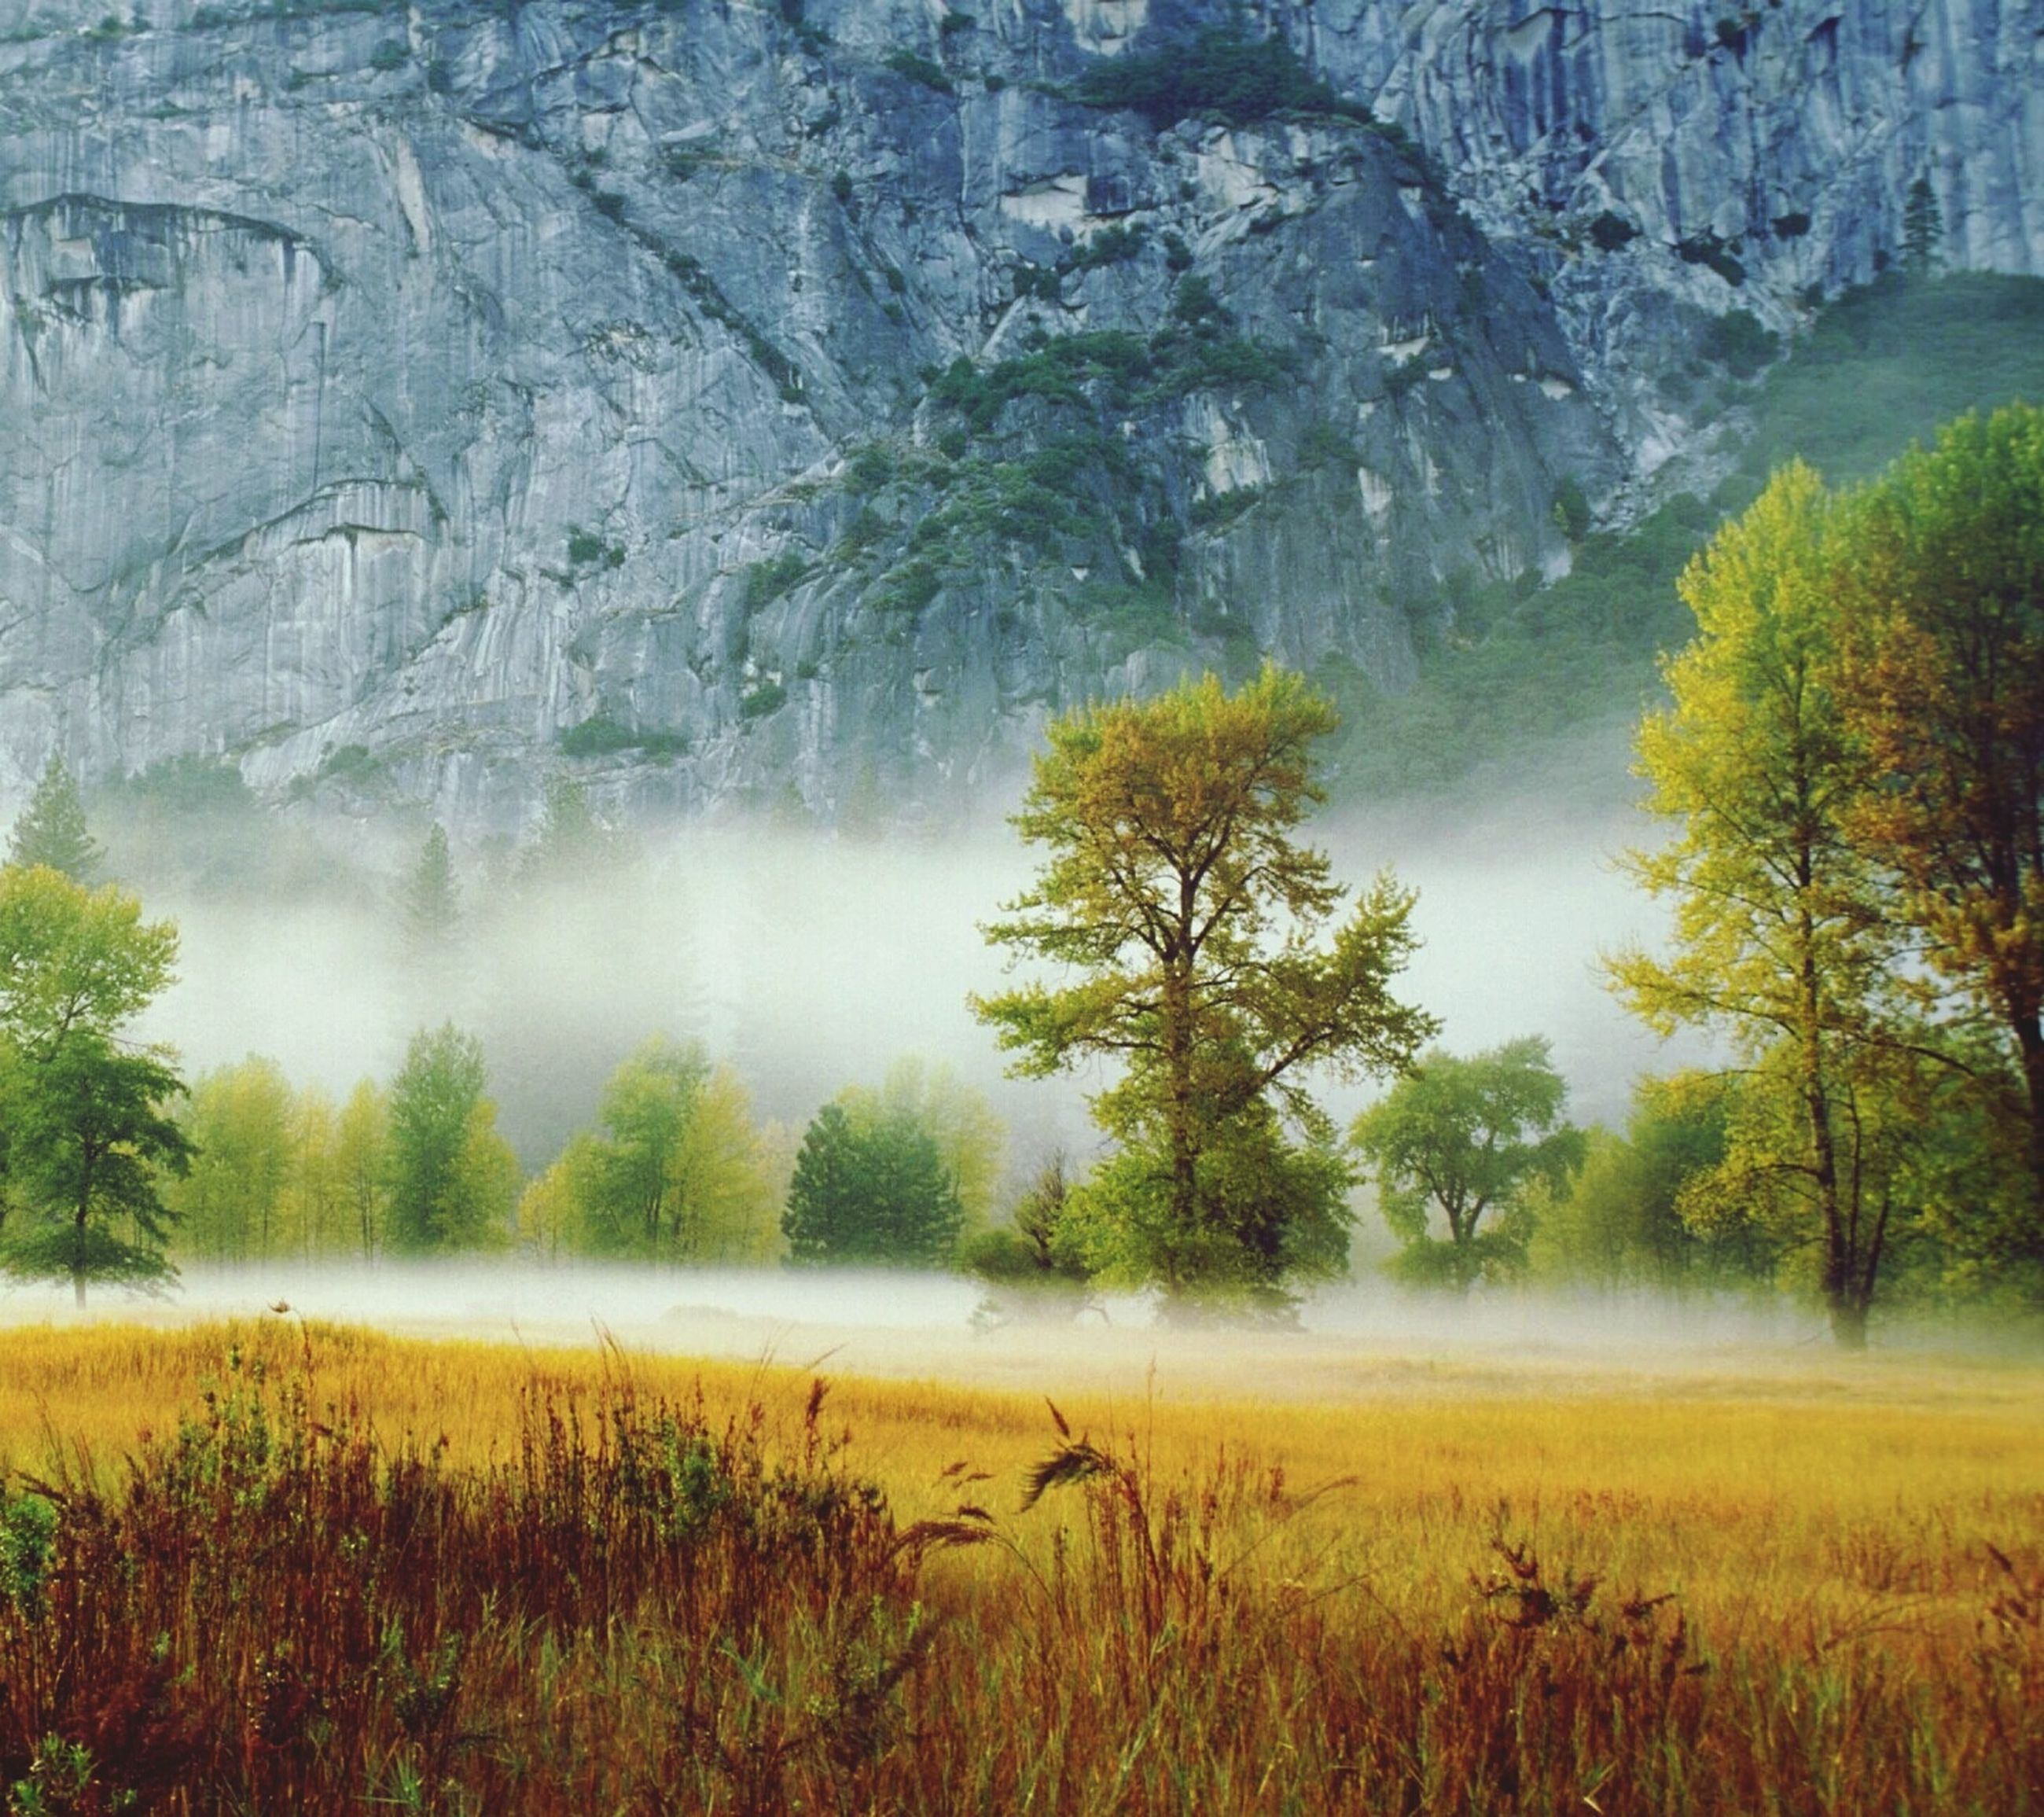 tranquil scene, tranquility, tree, scenics, beauty in nature, mountain, nature, landscape, non-urban scene, forest, growth, fog, idyllic, plant, lake, grass, water, day, remote, season